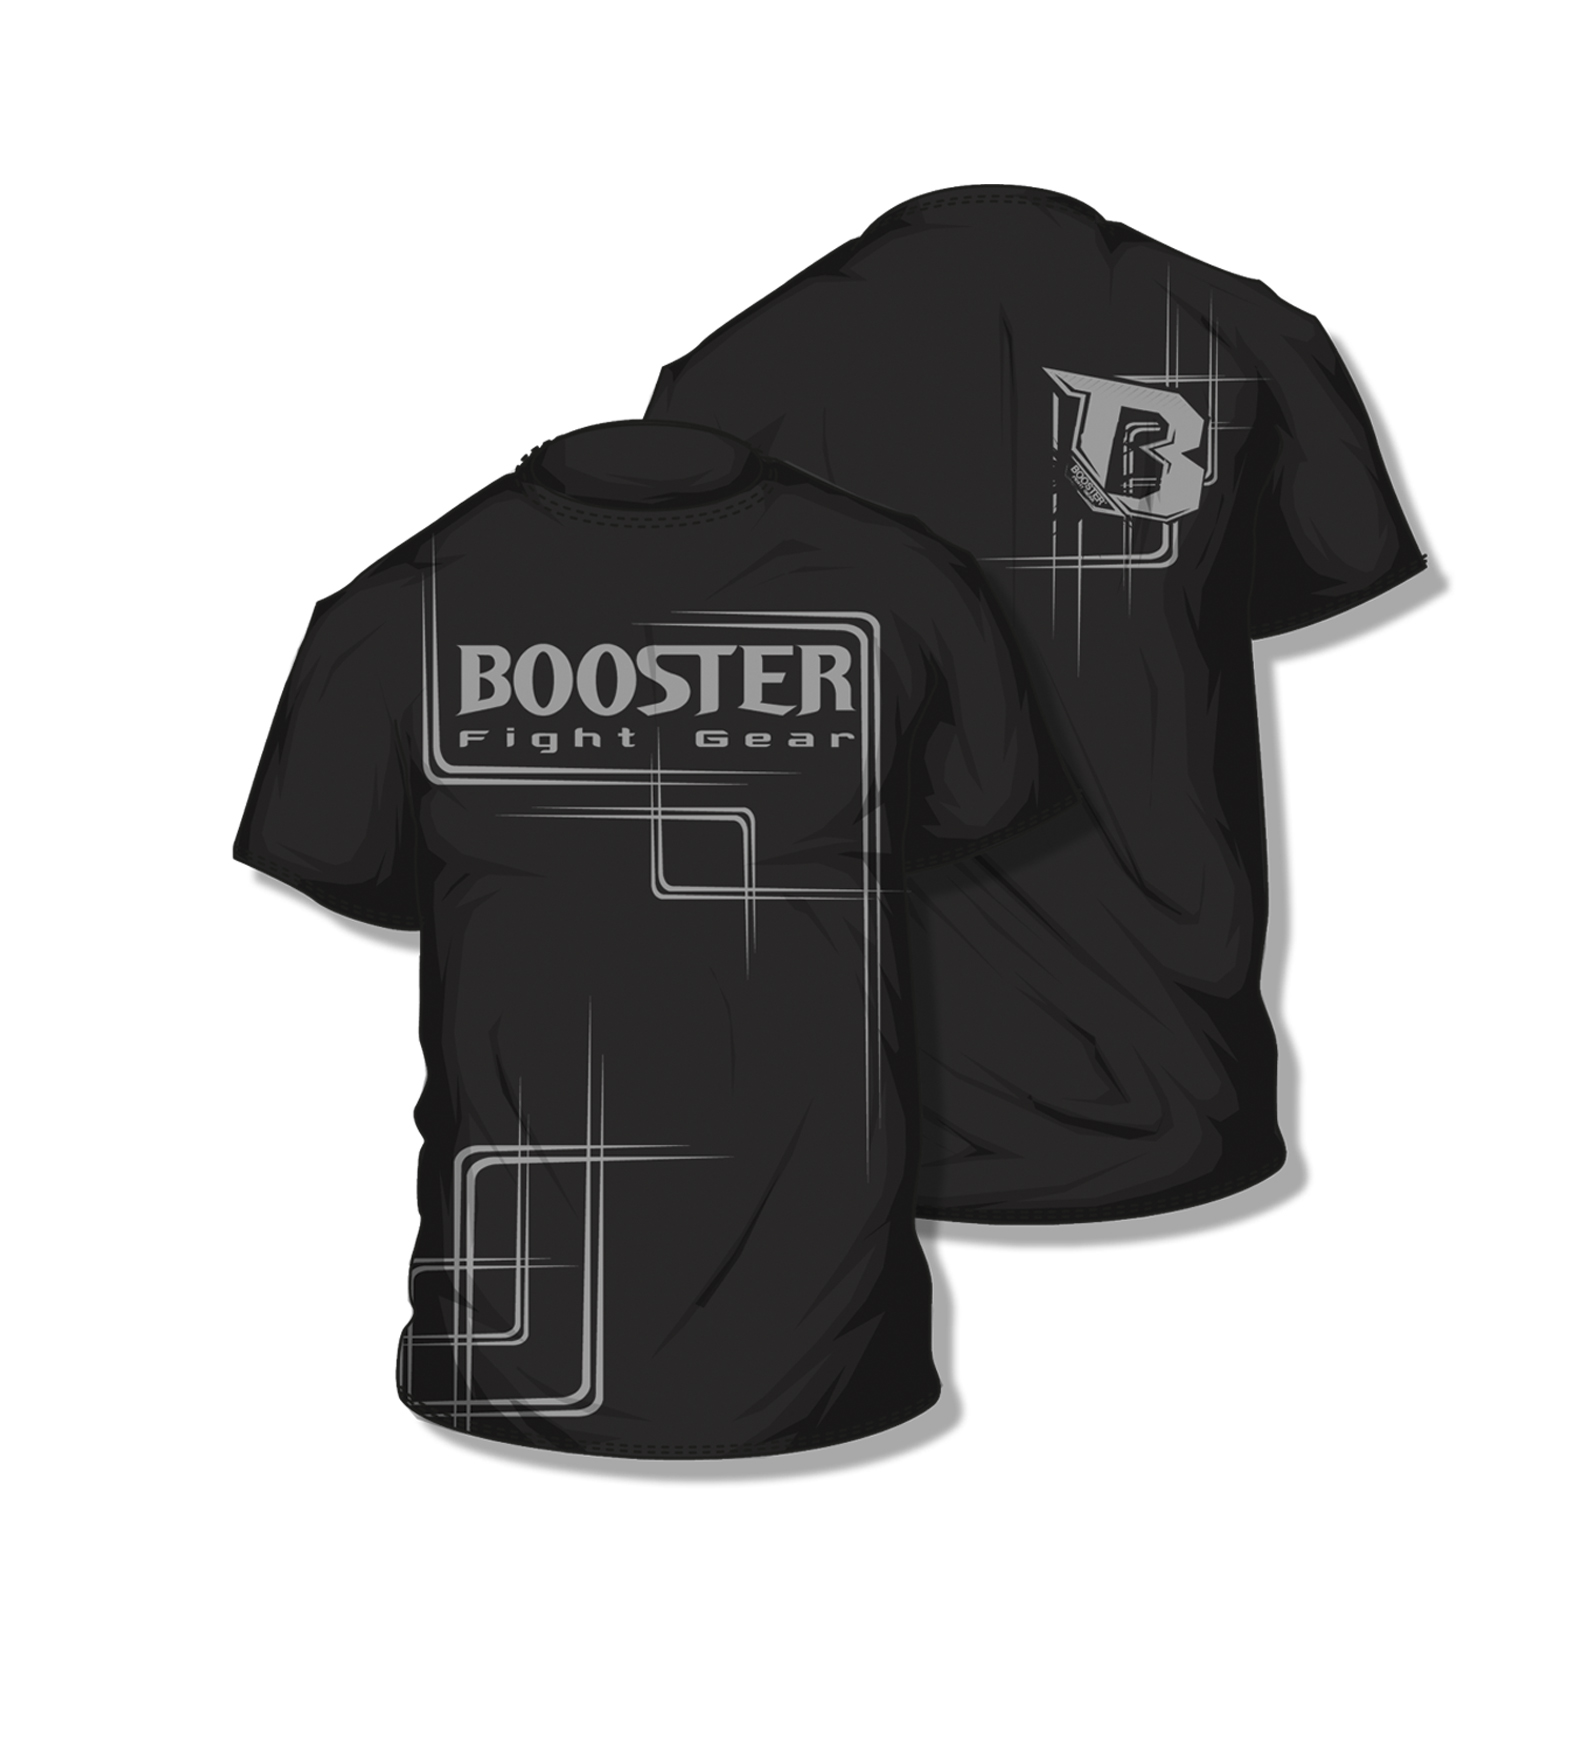 Booster  BC Walk out shirt black - S